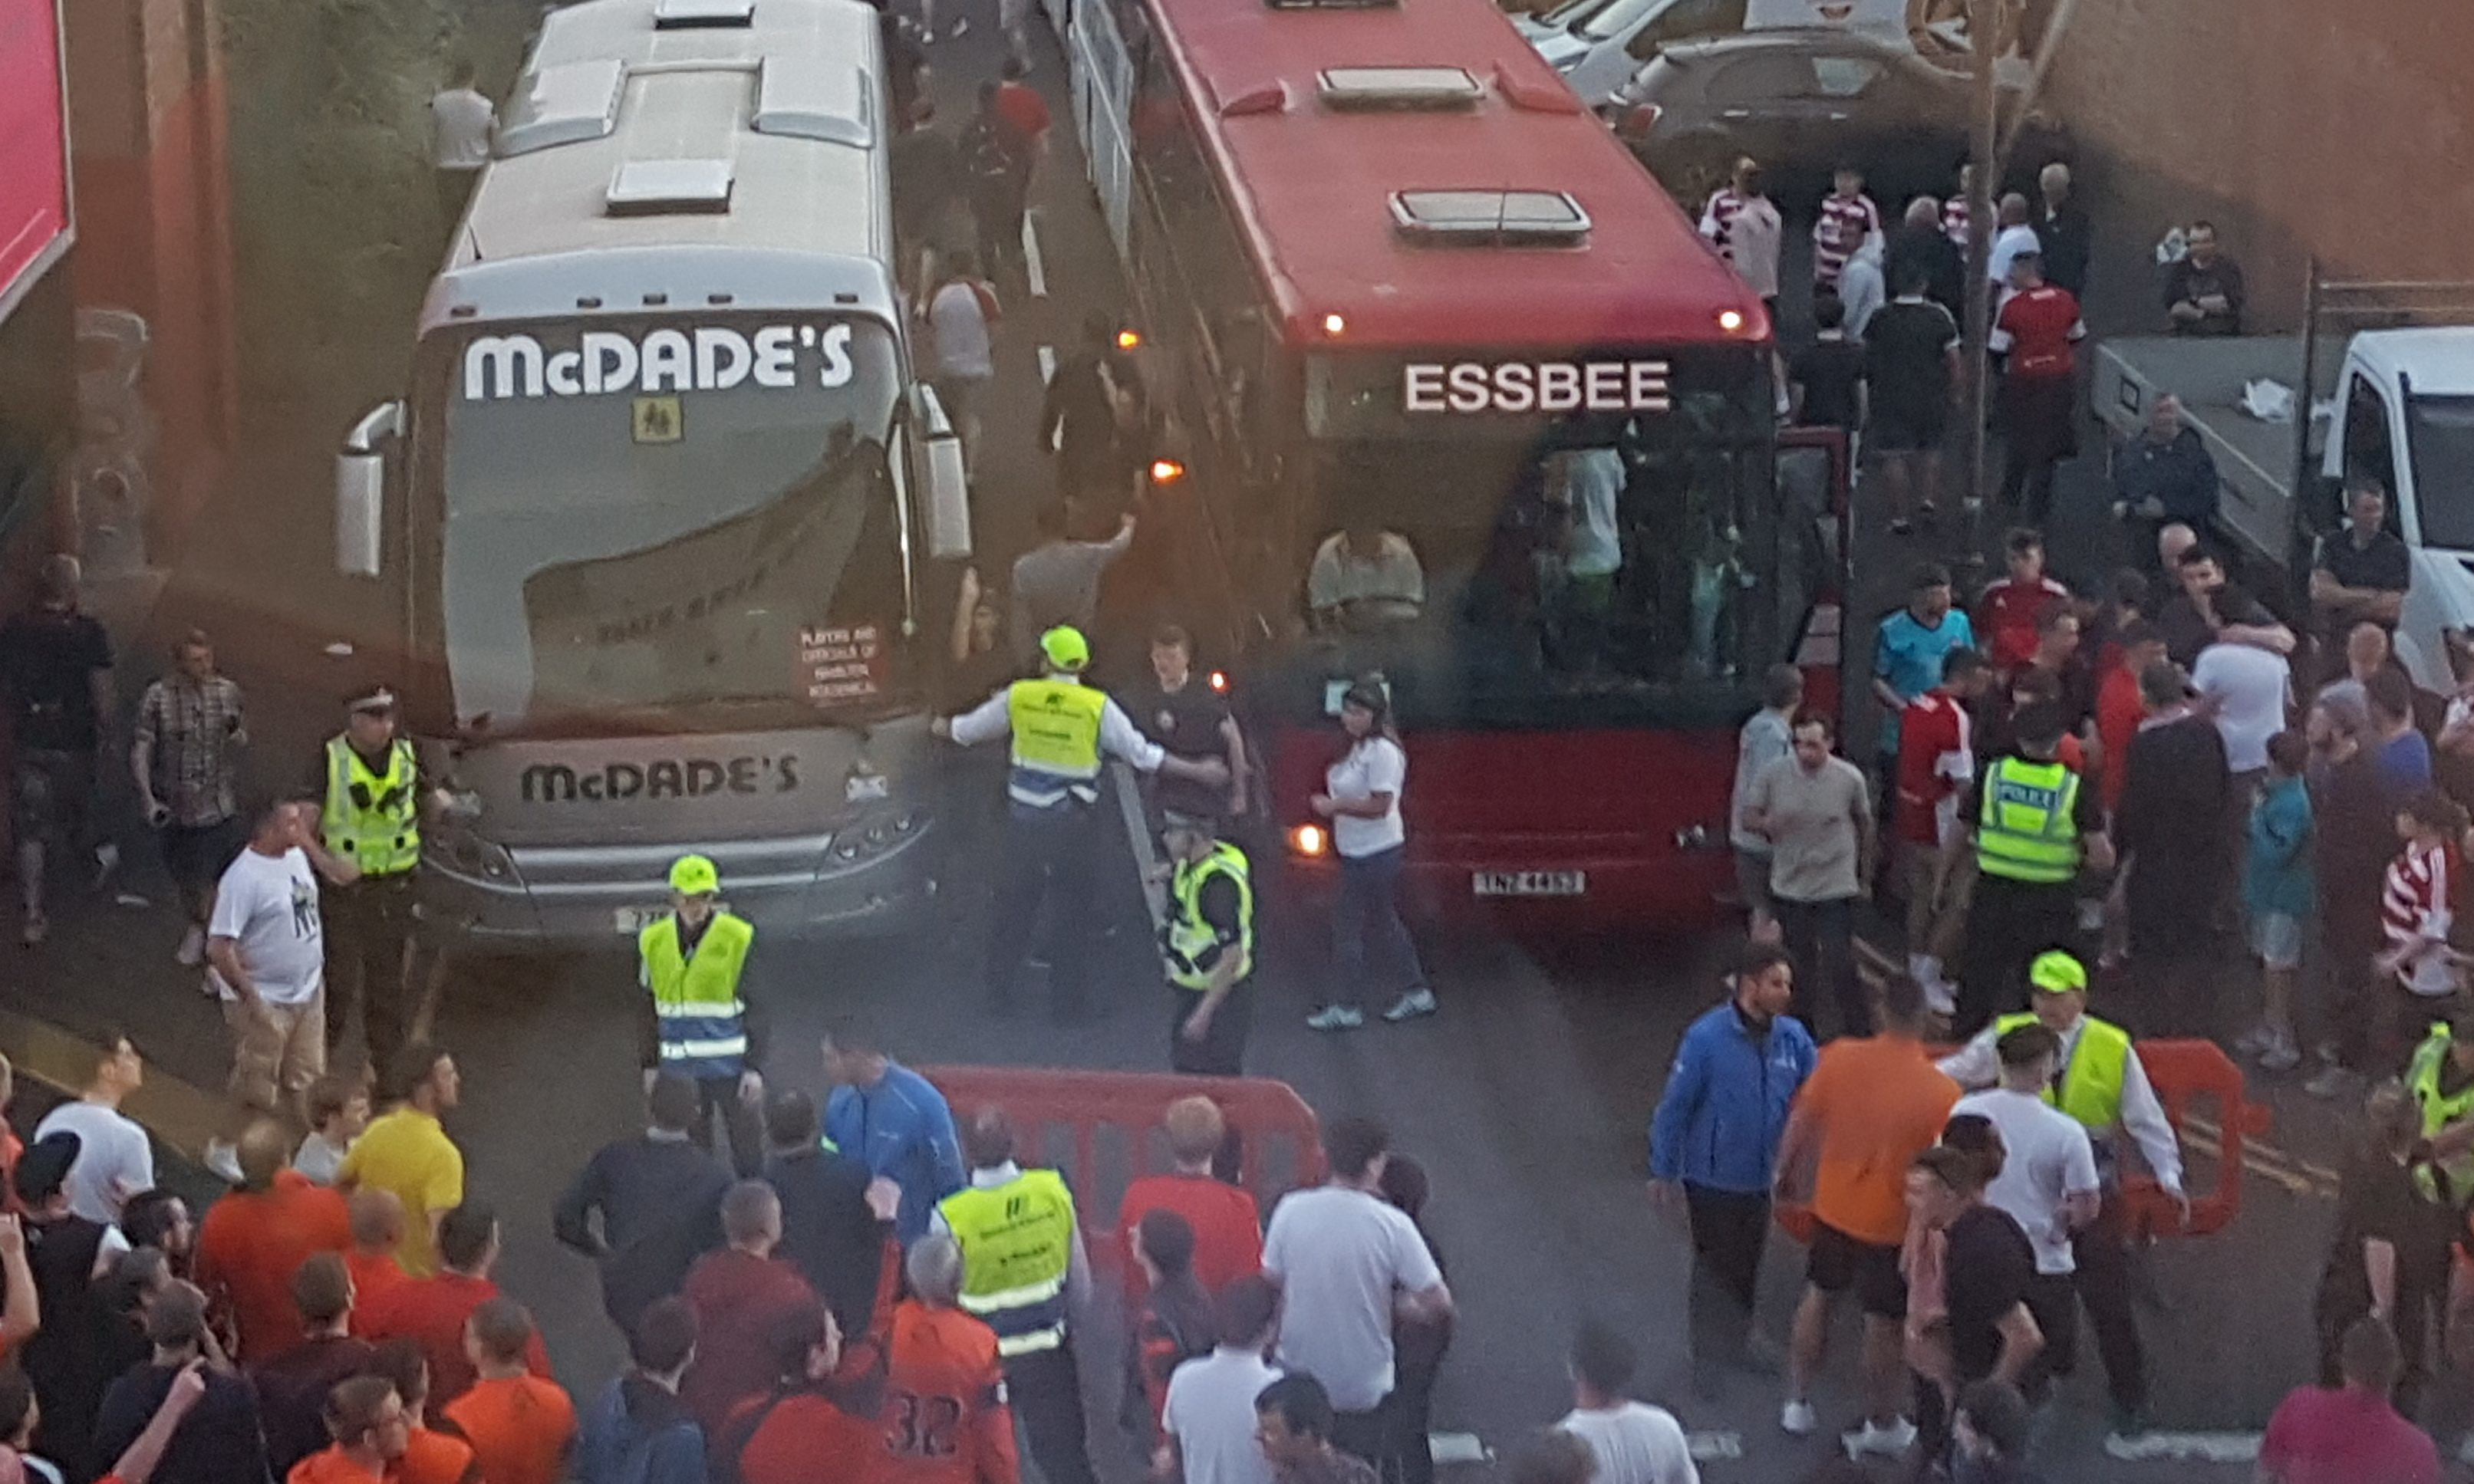 Police and security try to separate Dundee United and Hamilton fans outside Tannadice last Thursday